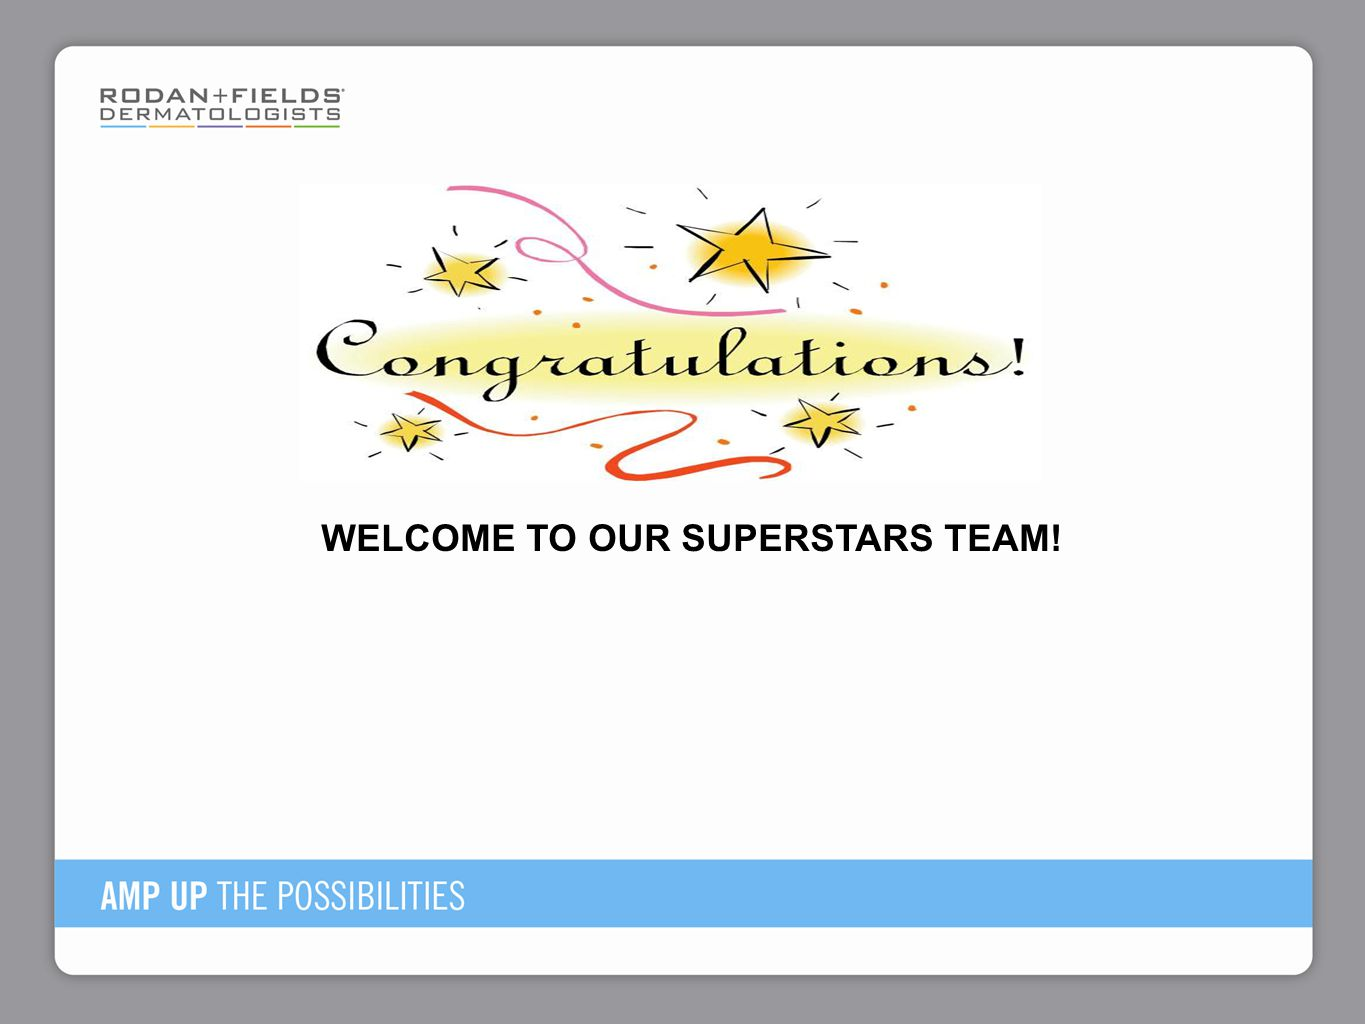 WELCOME TO OUR SUPERSTARS TEAM!